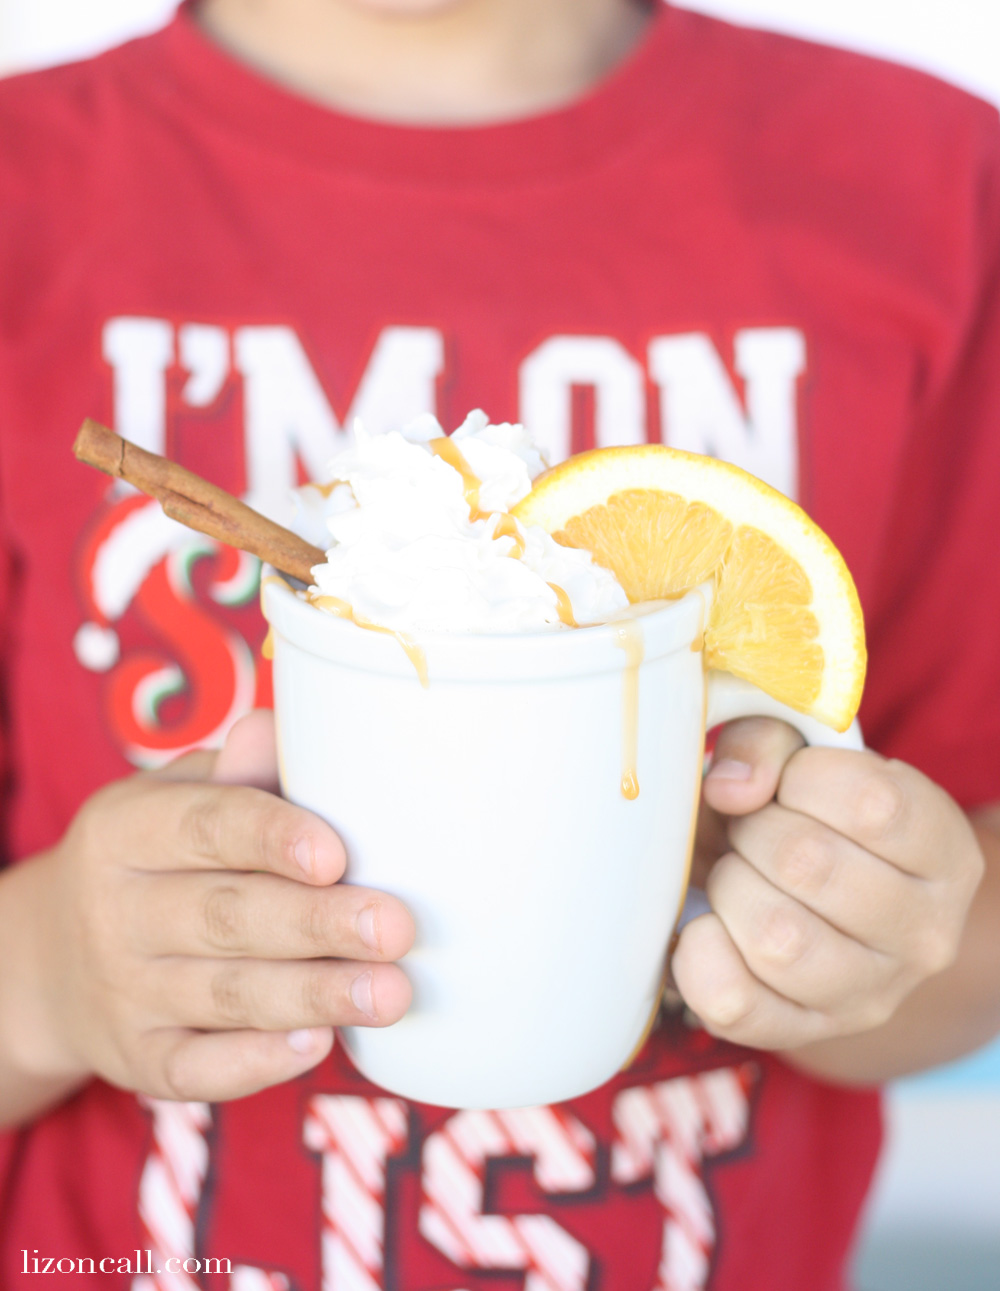 Warm up your party guests with this slow cooker party punch recipe. It will be a delicious addition to your holiday gatherings.